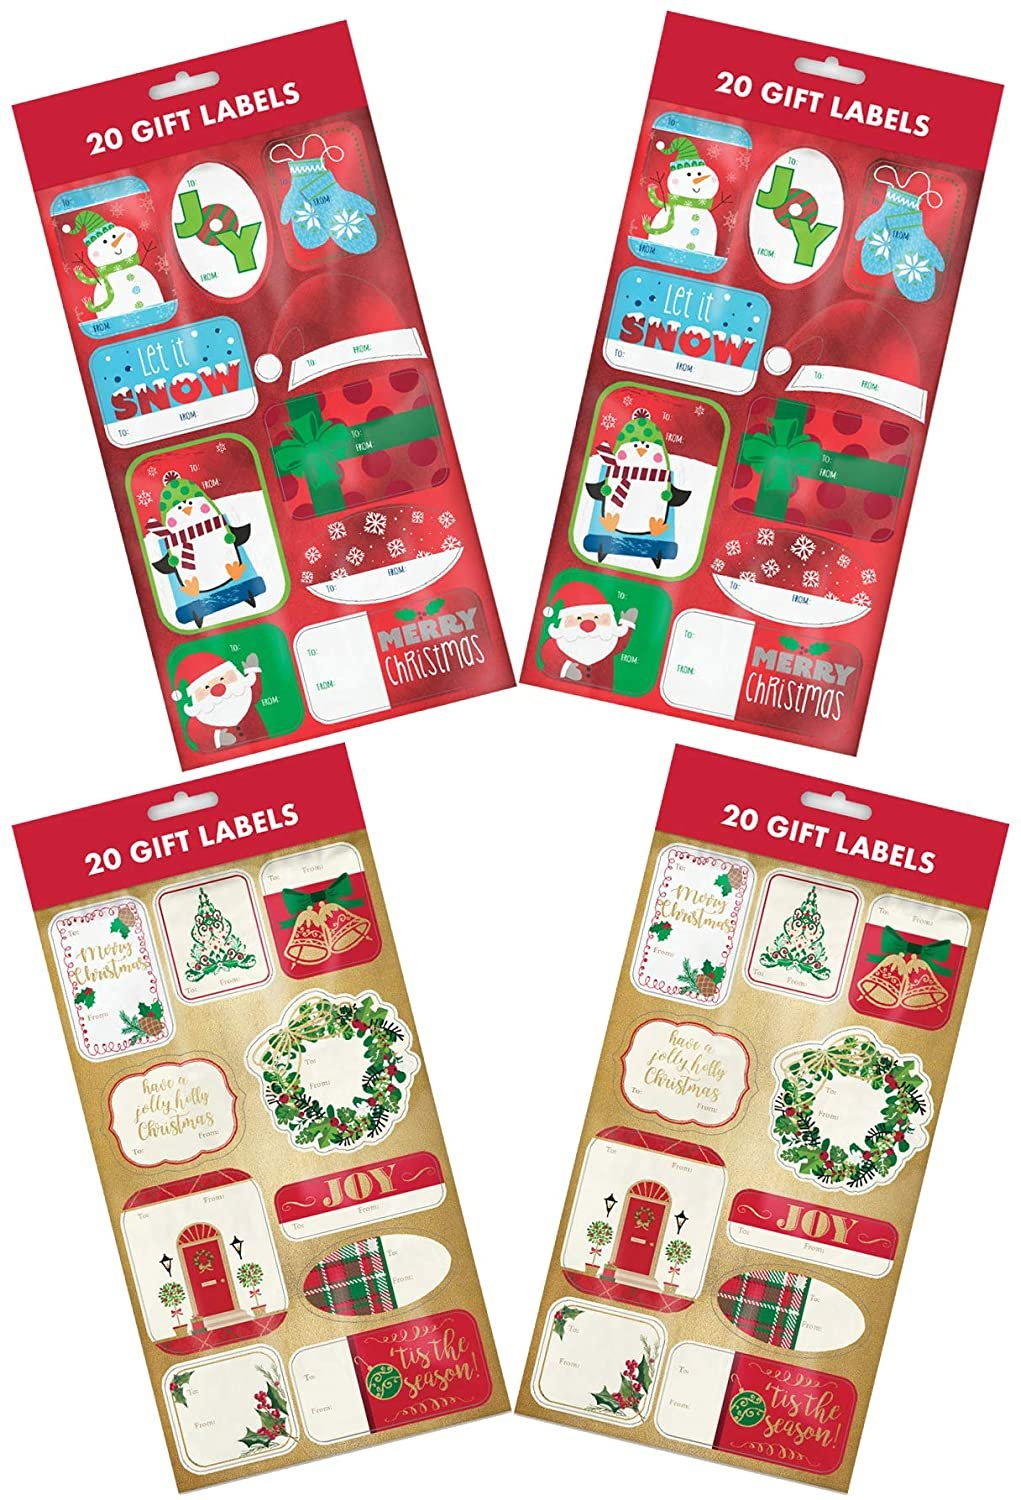 B-THERE Bundle 80ct Foil Christmas Holiday Self- Adhesive Gift Tag Labels of Penguins, Snowman, Santa, Mittens, Wreath, Front Door